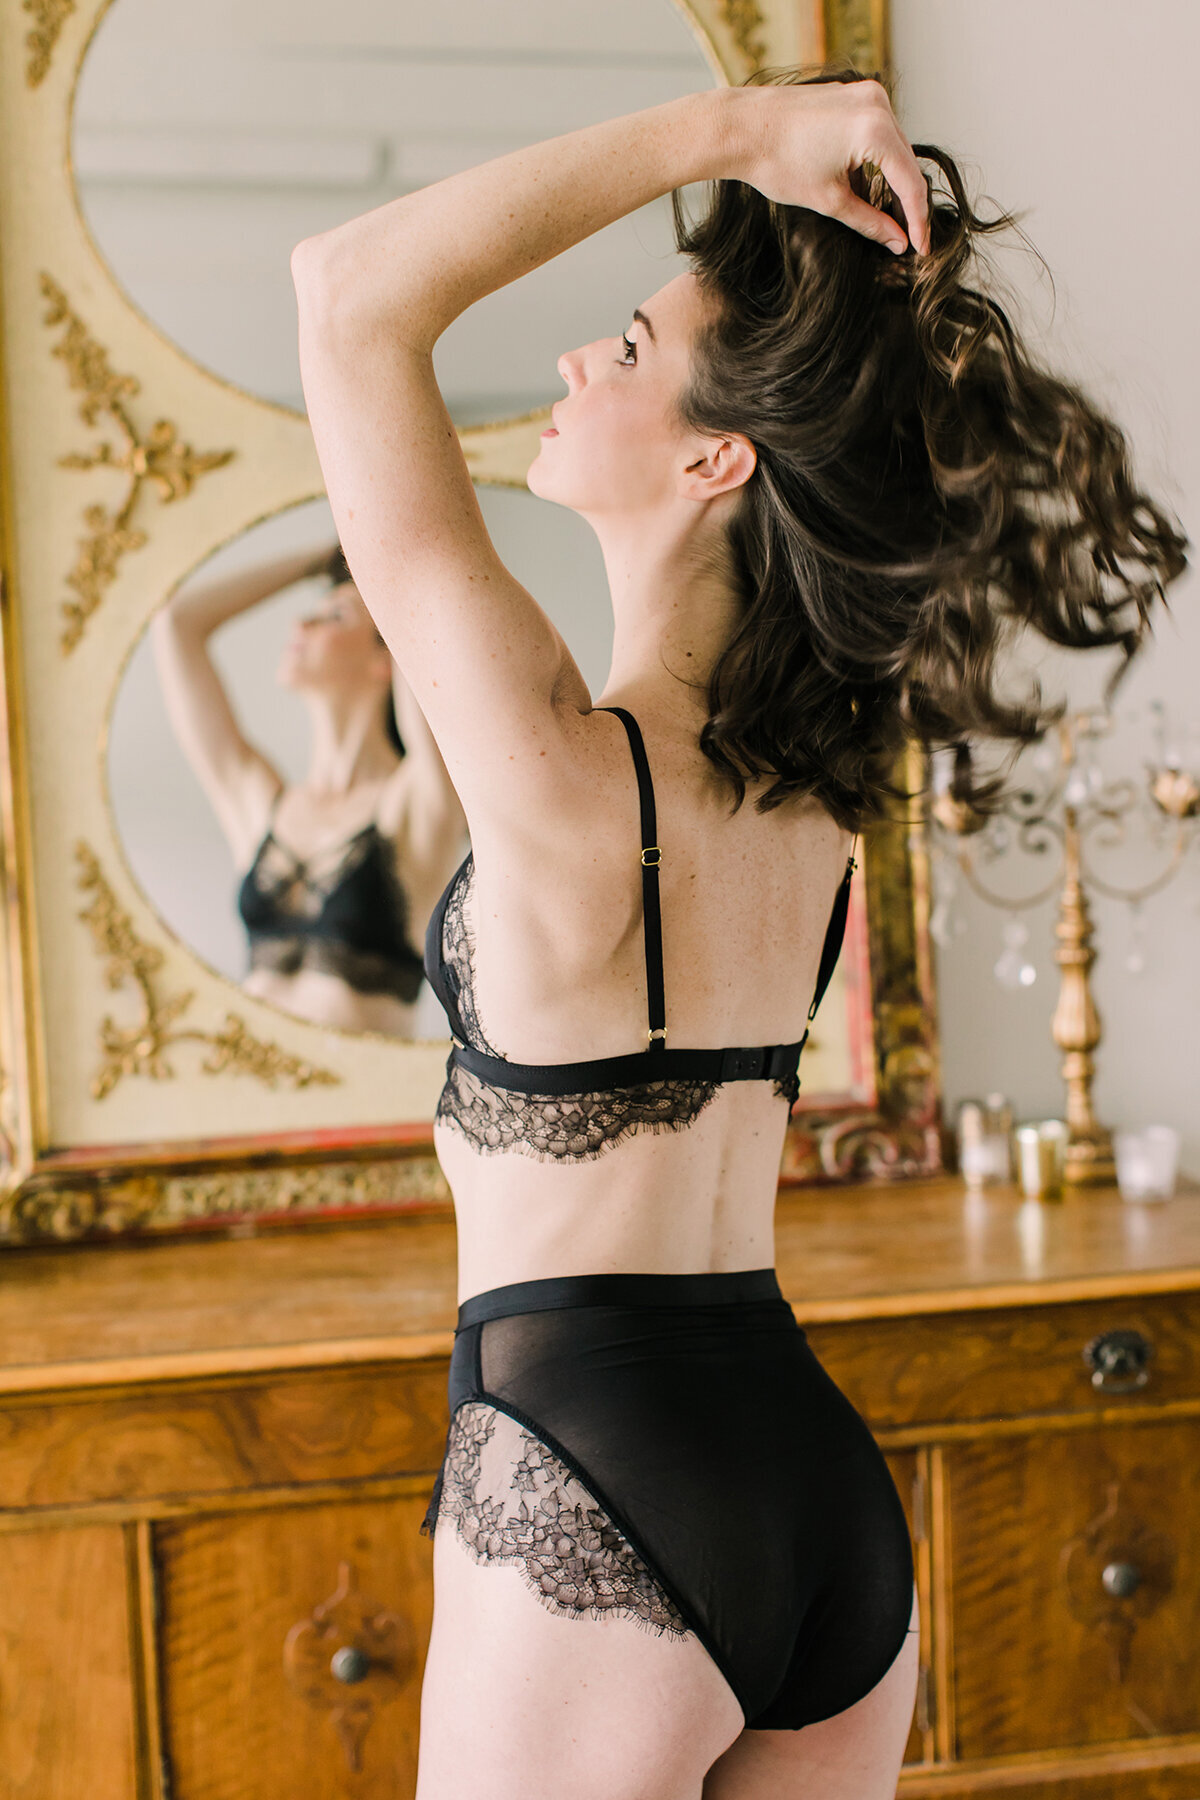 A very elegant and romantic boudoir photo with a mirror reflection